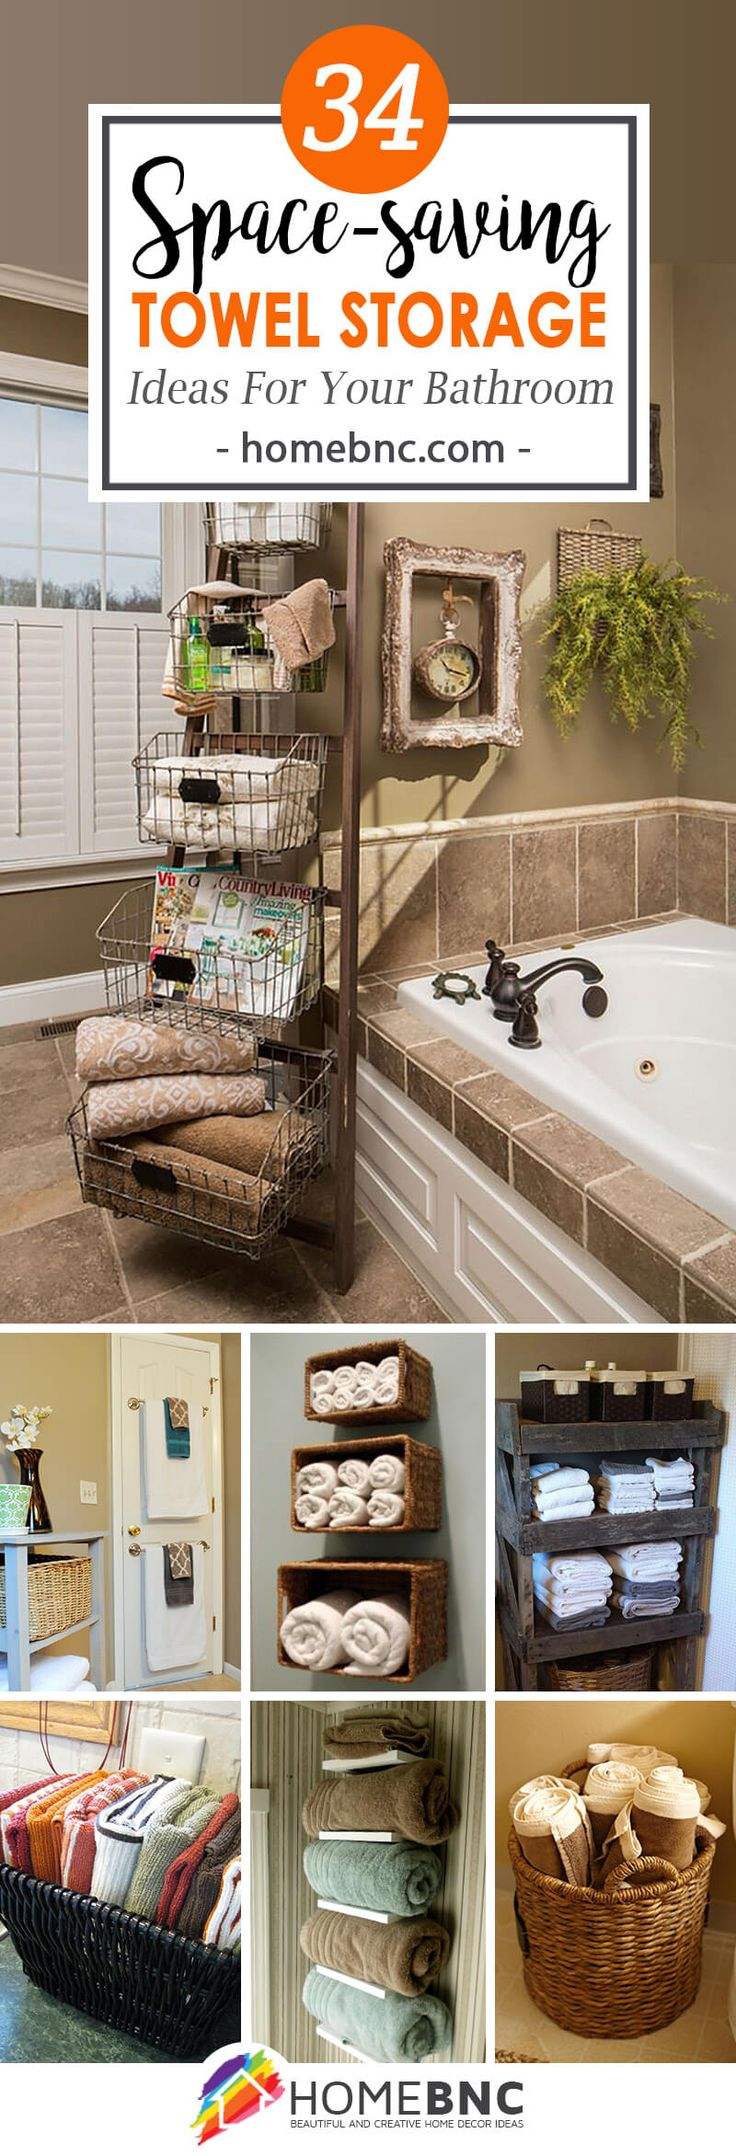 Bathroom storage for towels - 25 Best Ideas About Towel Storage On Pinterest Bathroom Towel Storage Bathroom Towels And Small Half Bathrooms